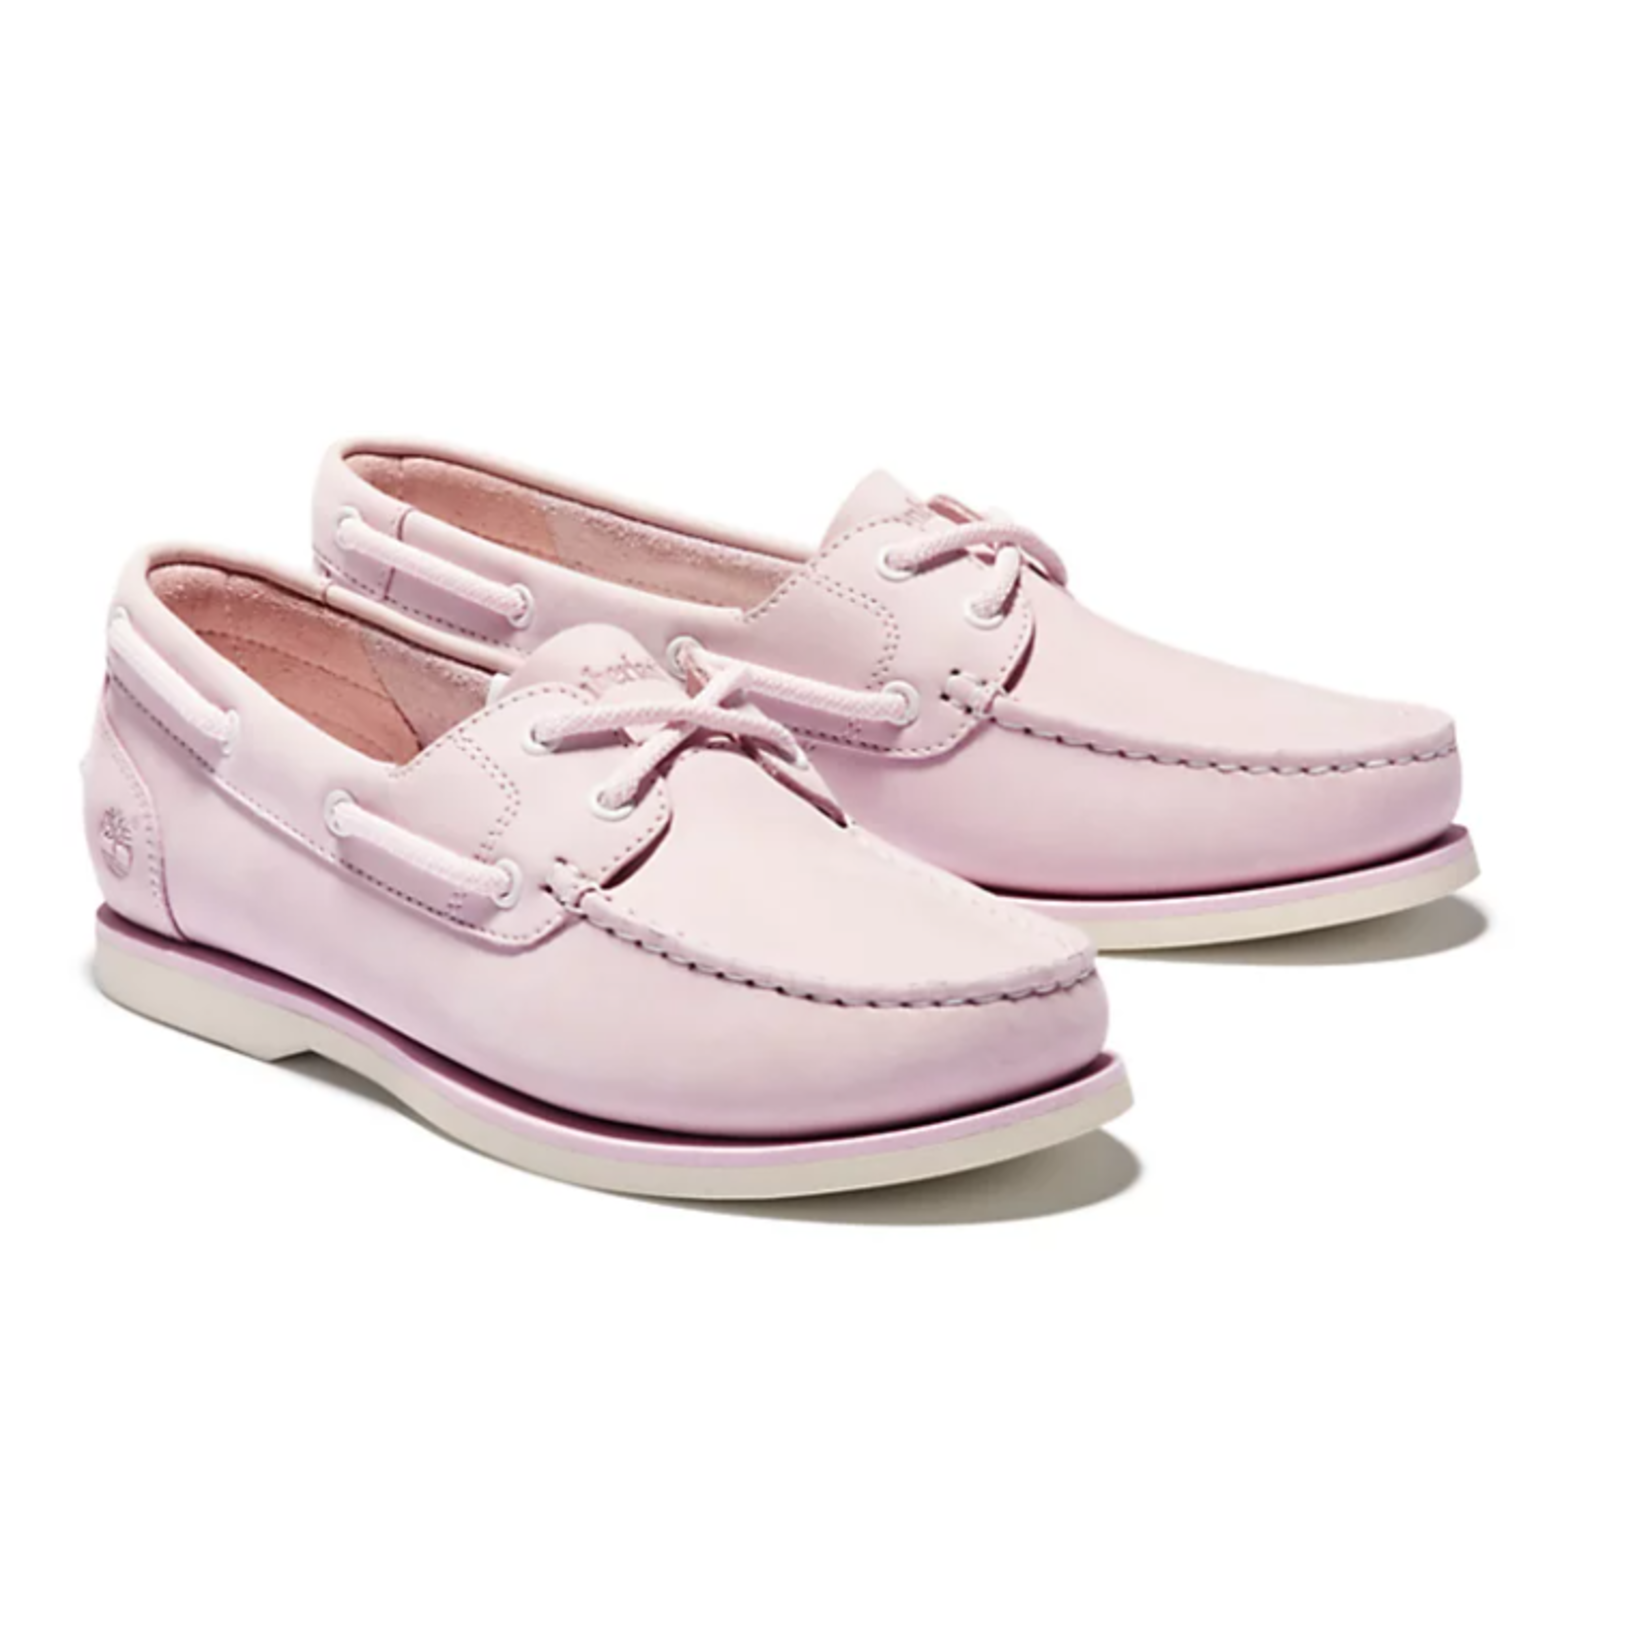 Timberland CLASSIC BOAT SHOE FOR WOMEN IN PINK